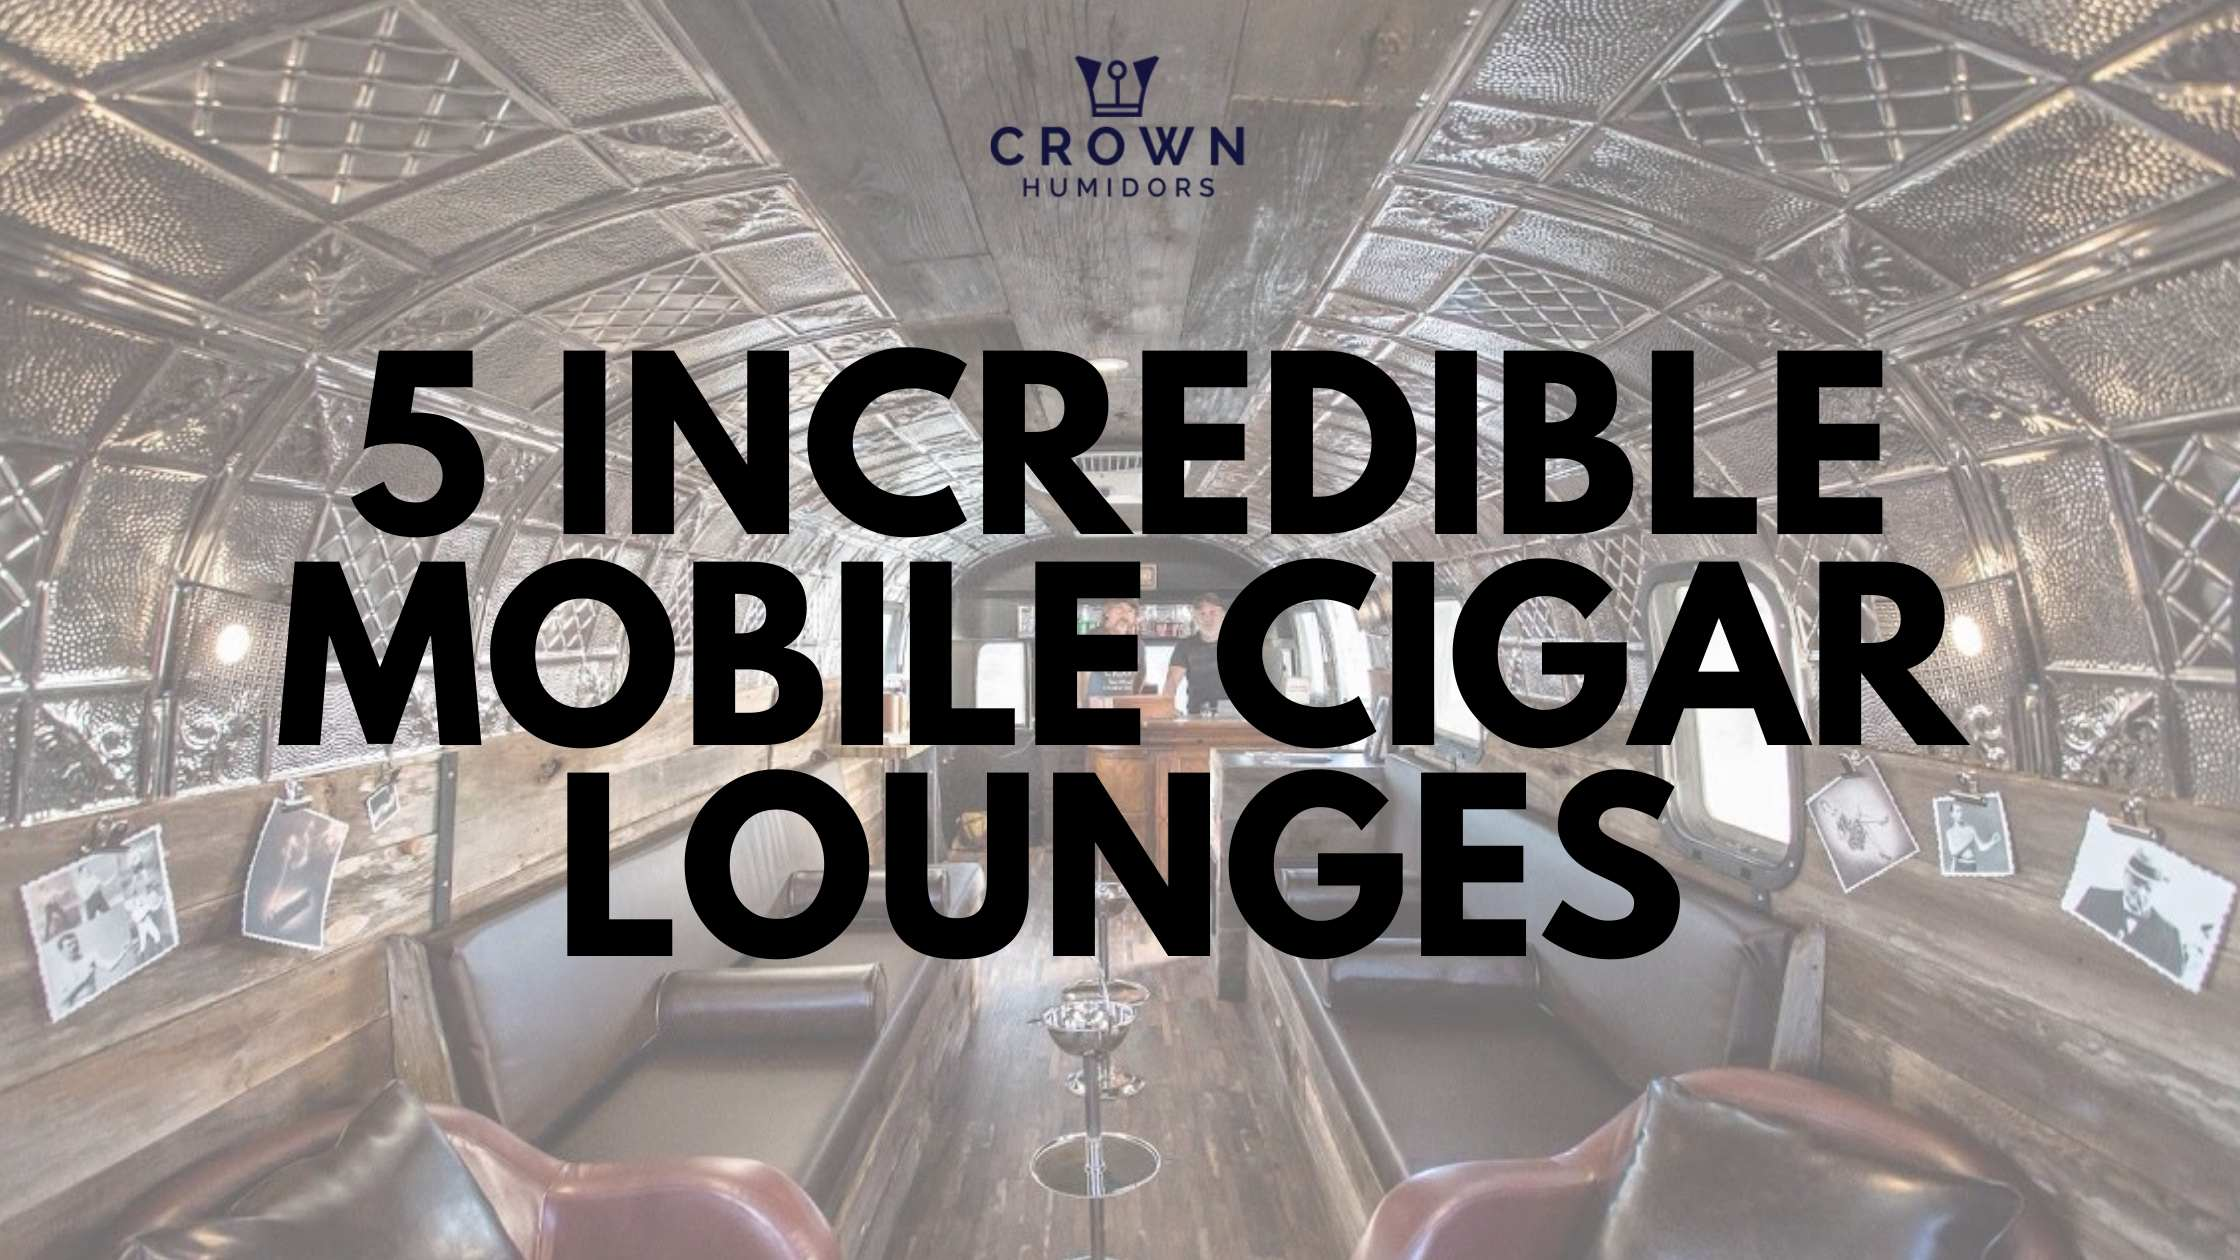 5 INcredible mobile cigar lounges